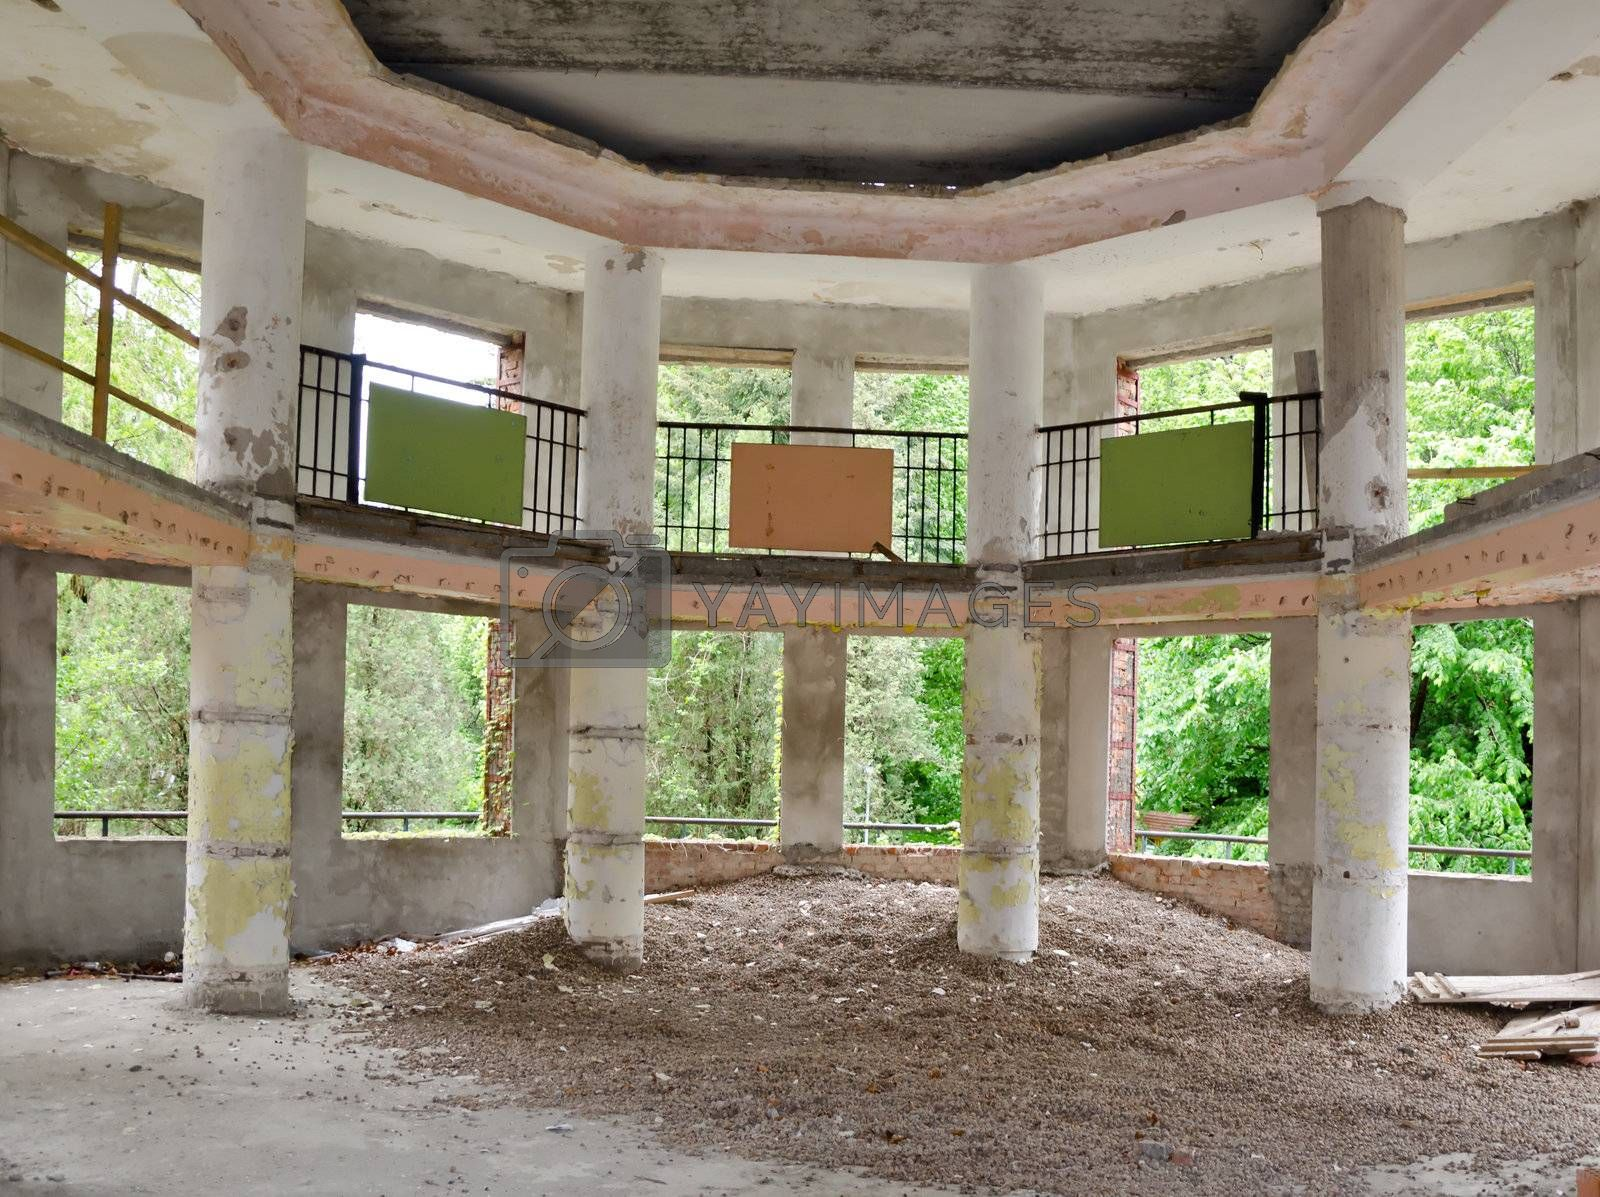 The building in the abandoned city of Pripyat in the Chernobyl nuclear disaster. The noise is a consequence of radiation may